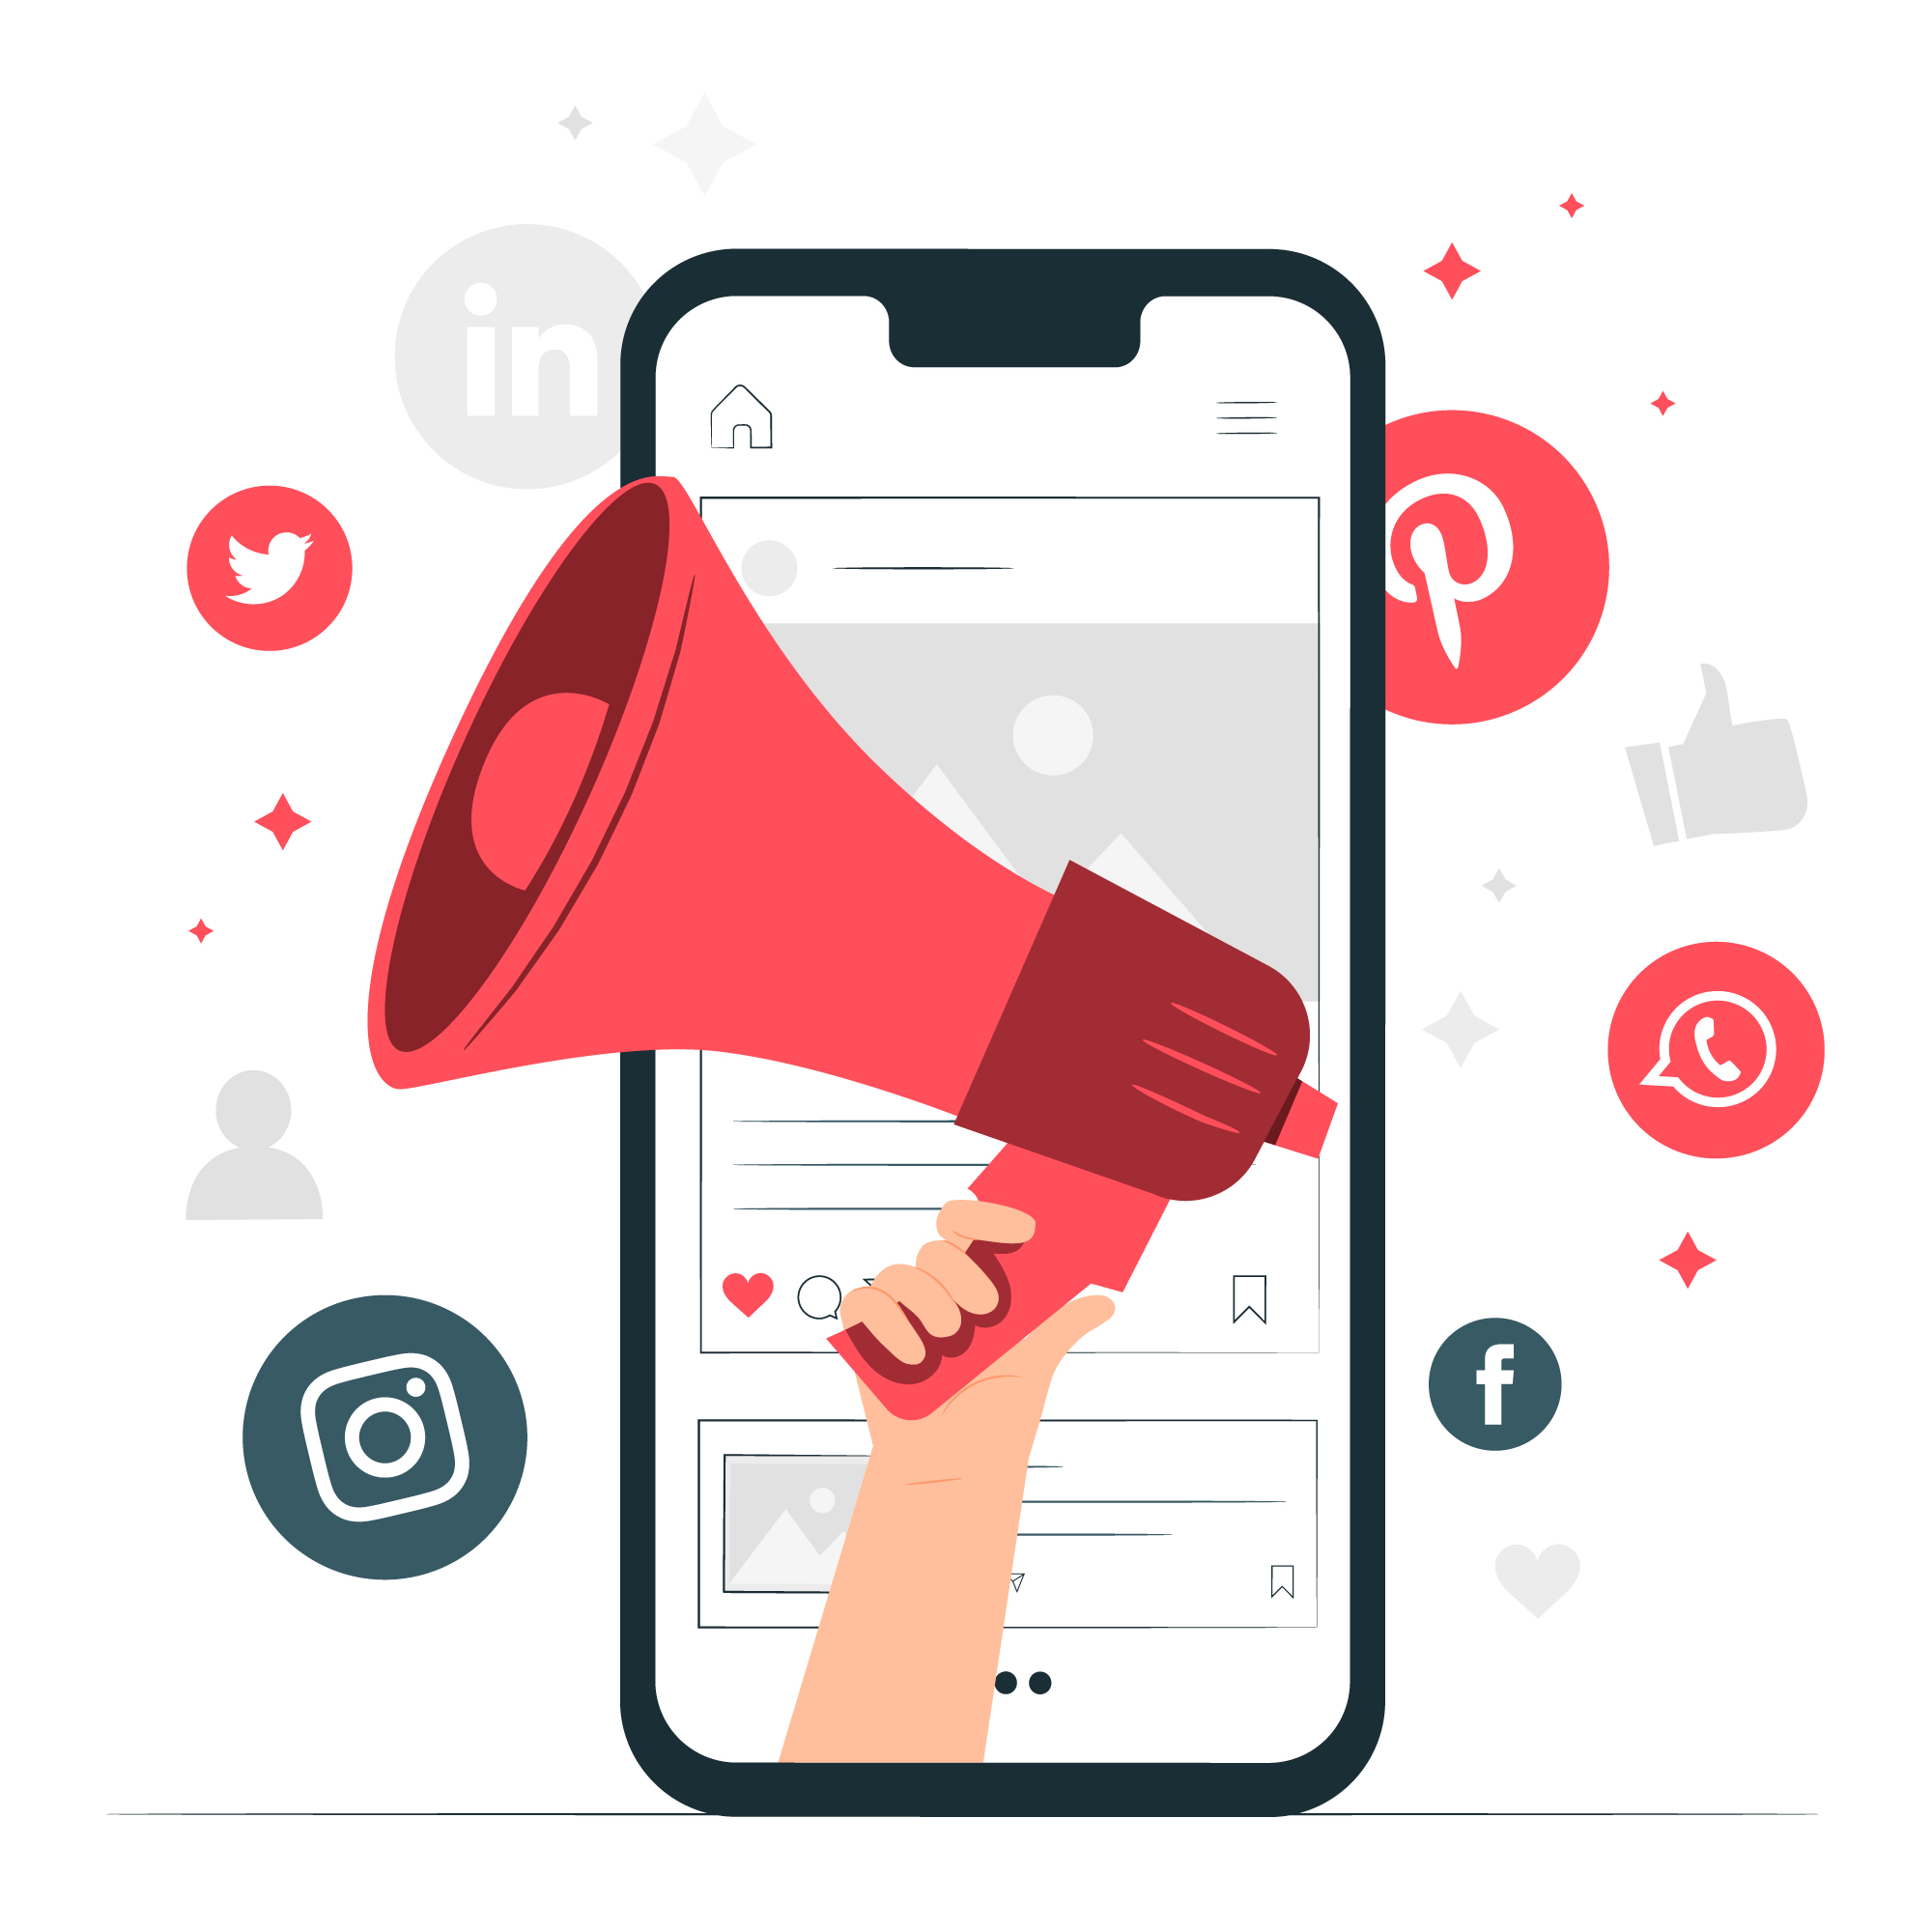 7 Reasons Why Social Media Marketing Is Important For Your Business In This Pandemic